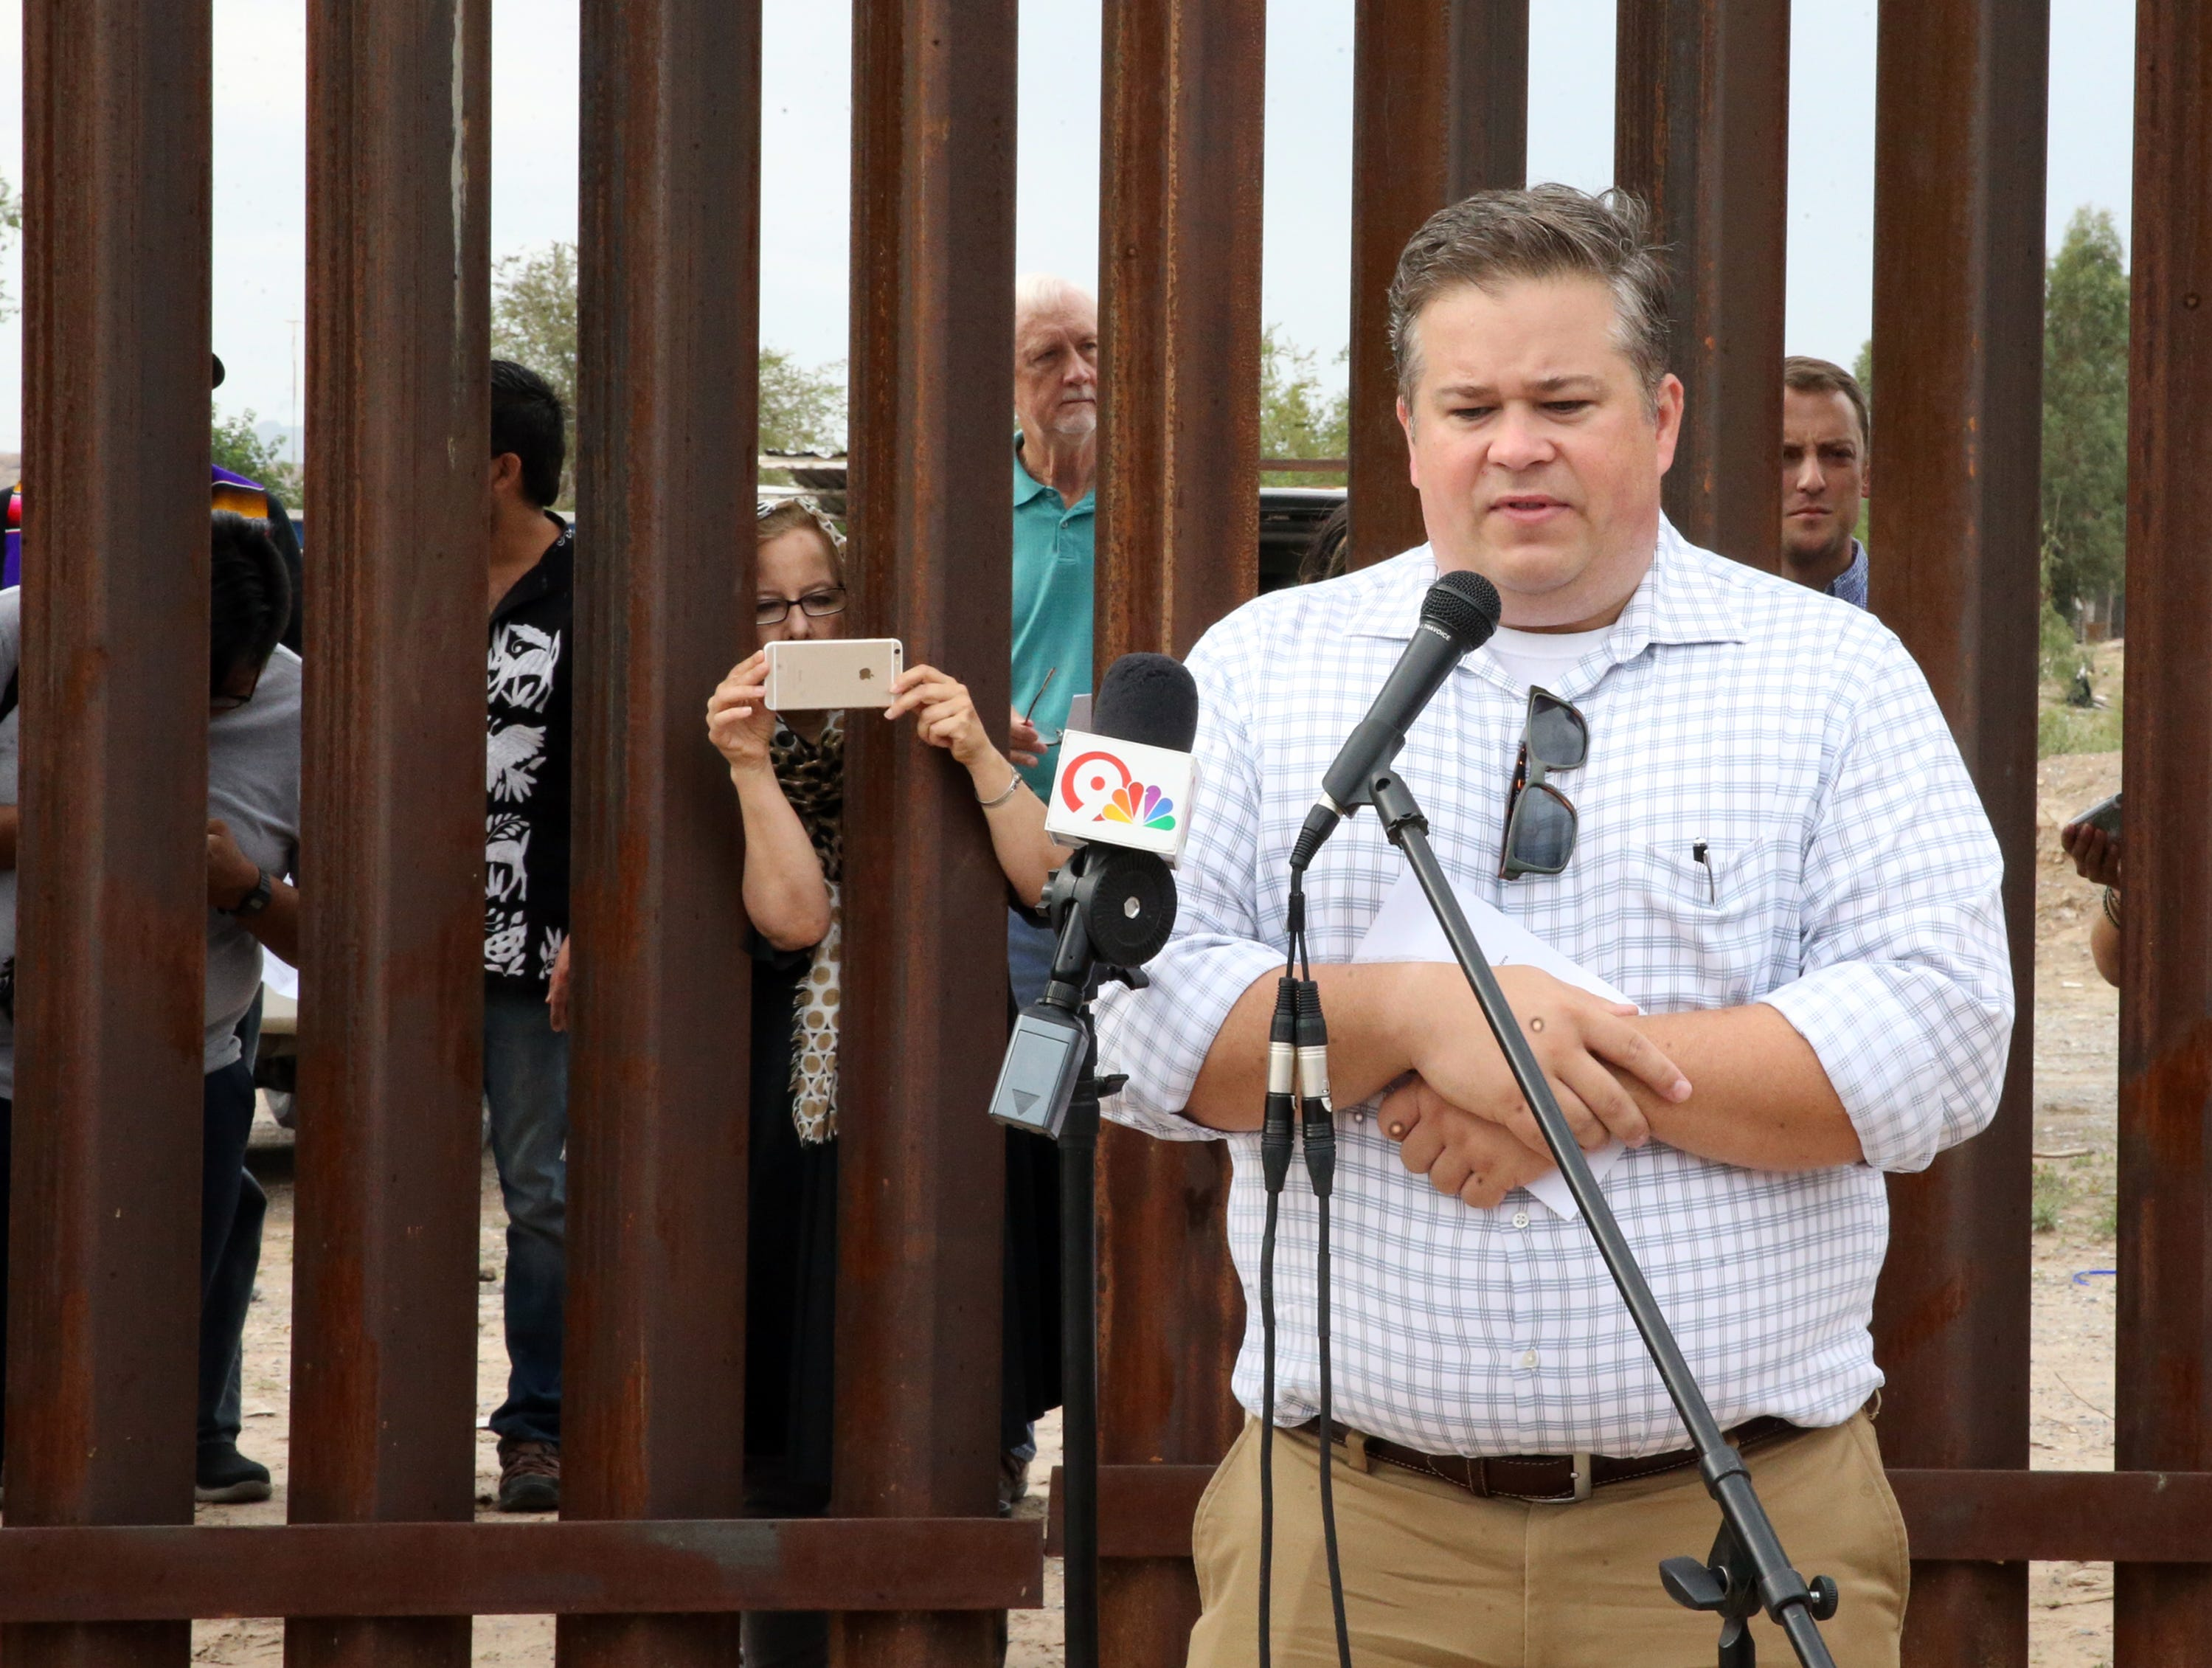 Dylan Corbett, executive director of Hope Border Institute speaks to a gathering of interfaith clergy at the border fence at Sunland Park, N.M. Friday.